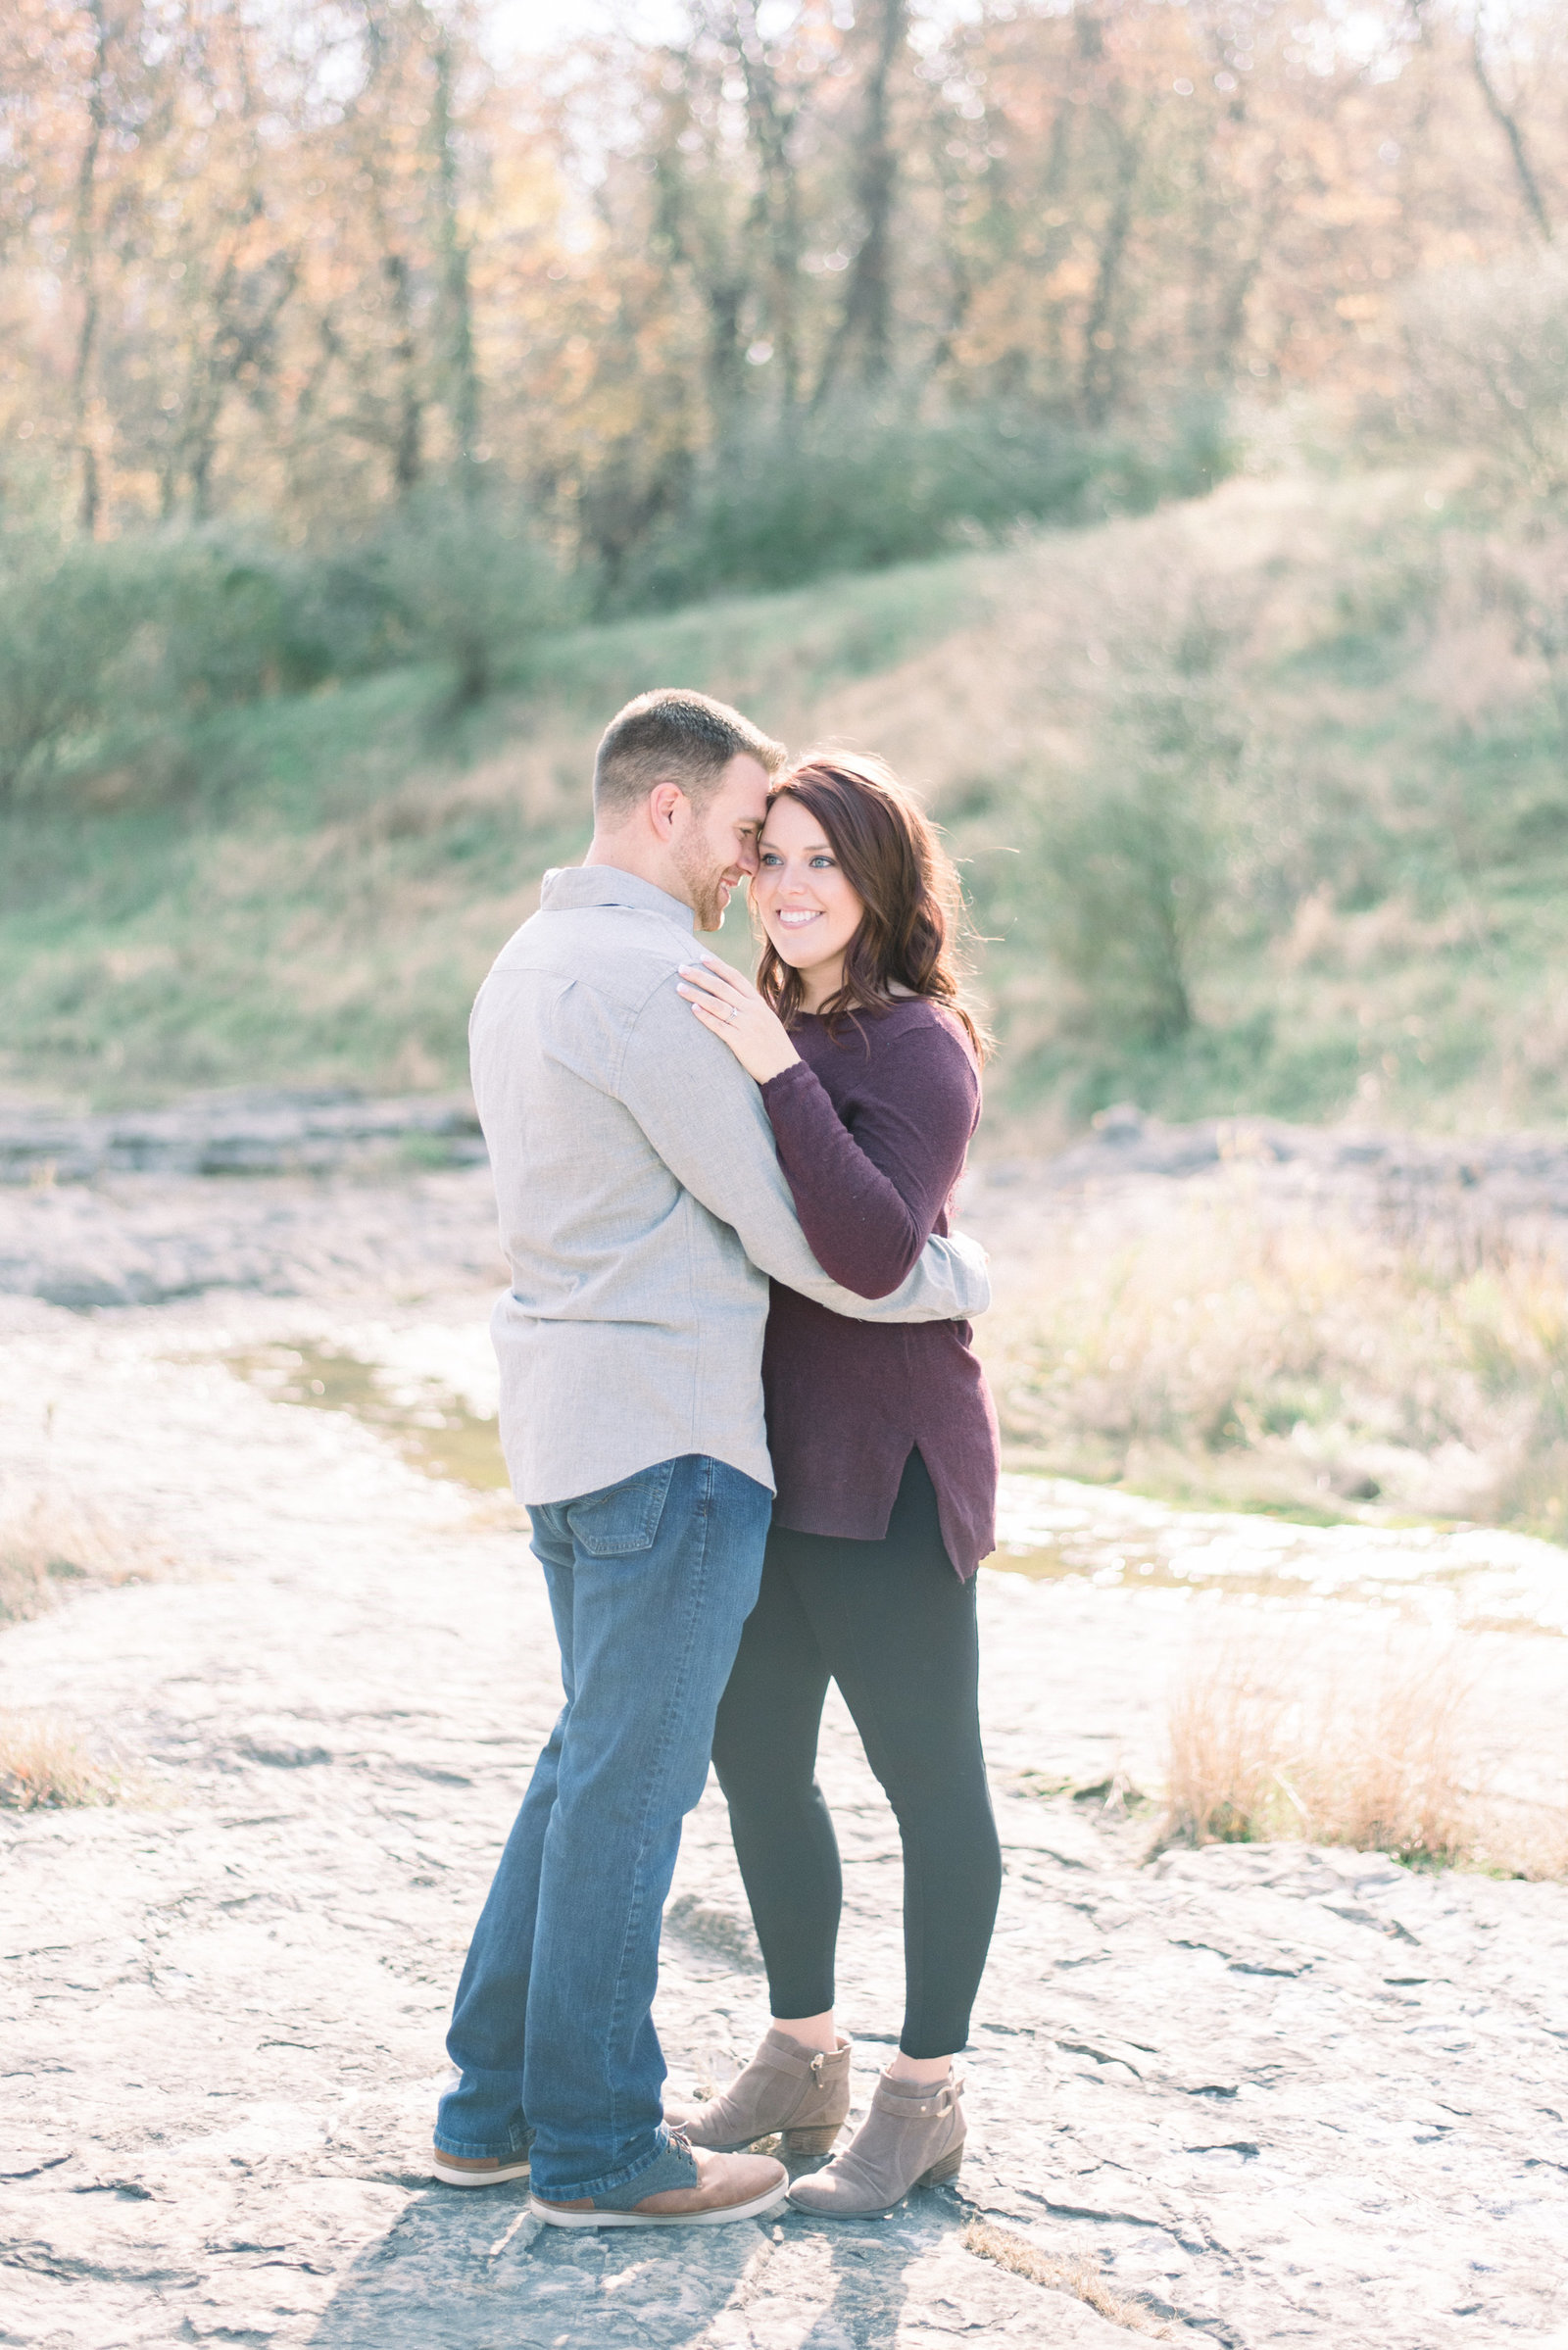 destination wedding photographer - engagement pictures-3